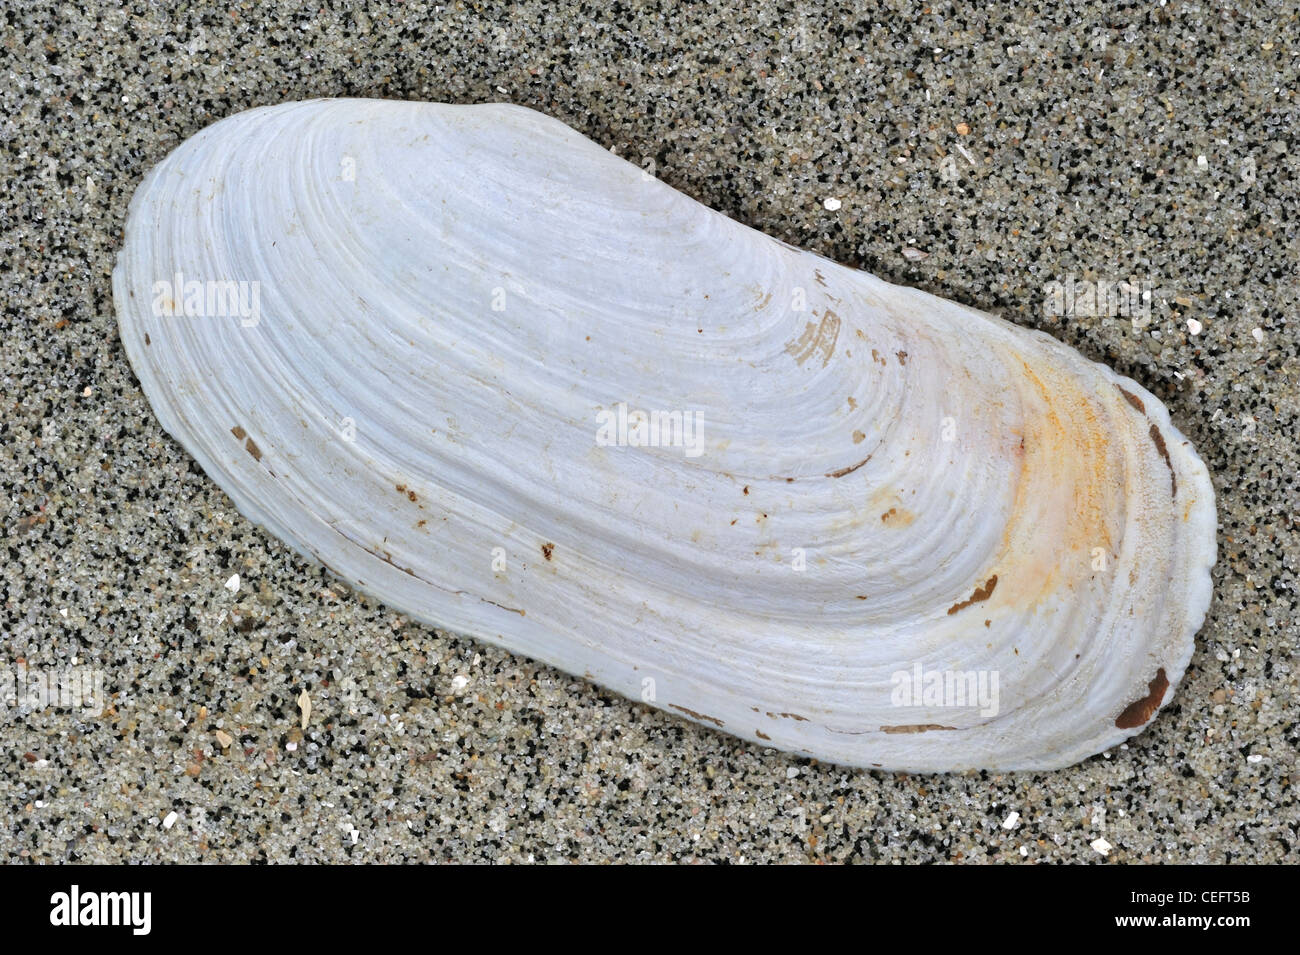 Oblong otter clam / Oblong otter-shell (Lutraria magna) on beach, Brittany, France - Stock Image